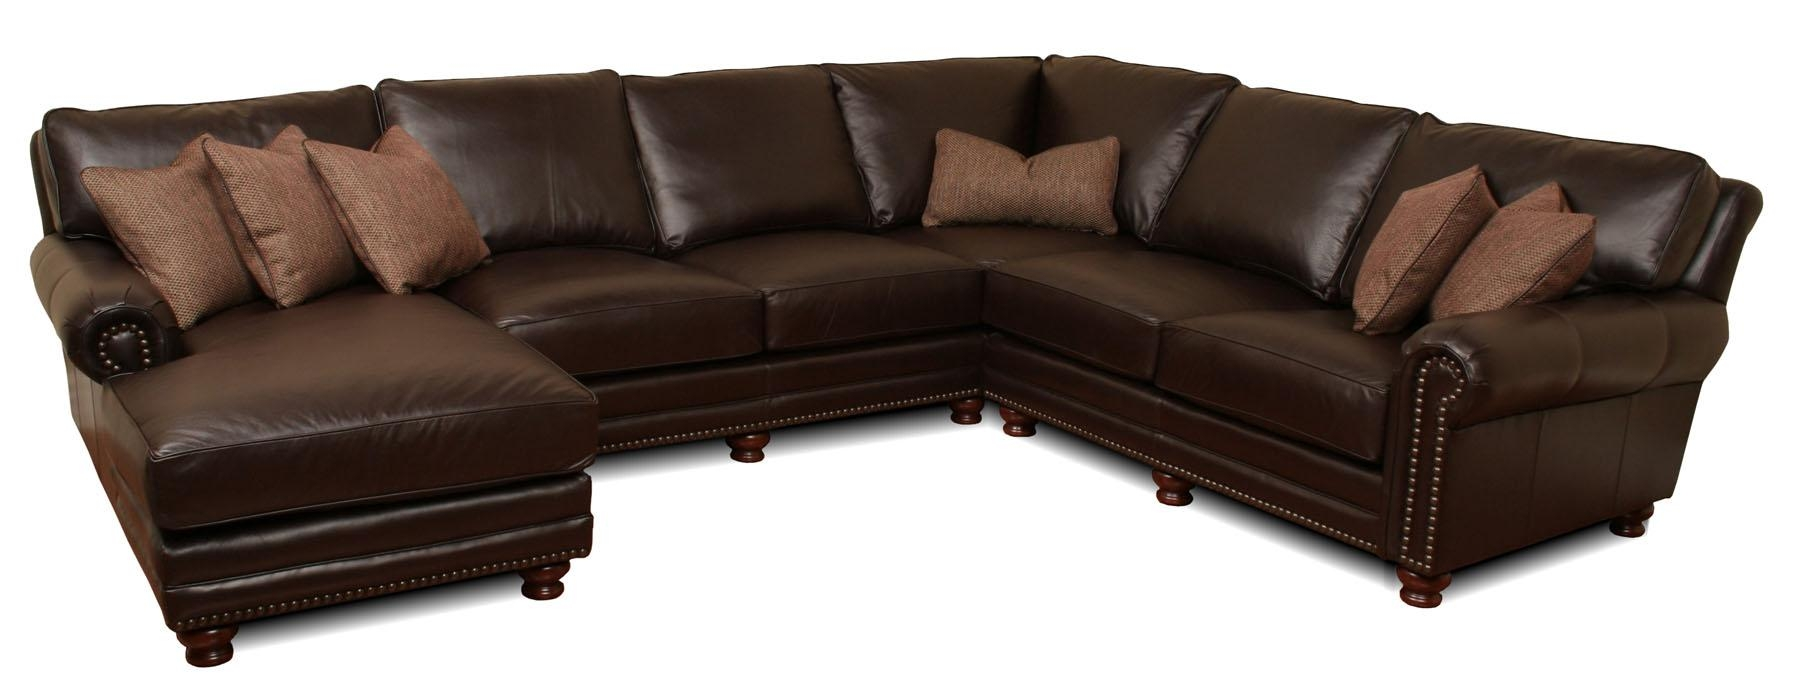 Kingston – Deep Leather Sectional | Leather Creations Furniture With Custom Leather Sectional (View 5 of 15)